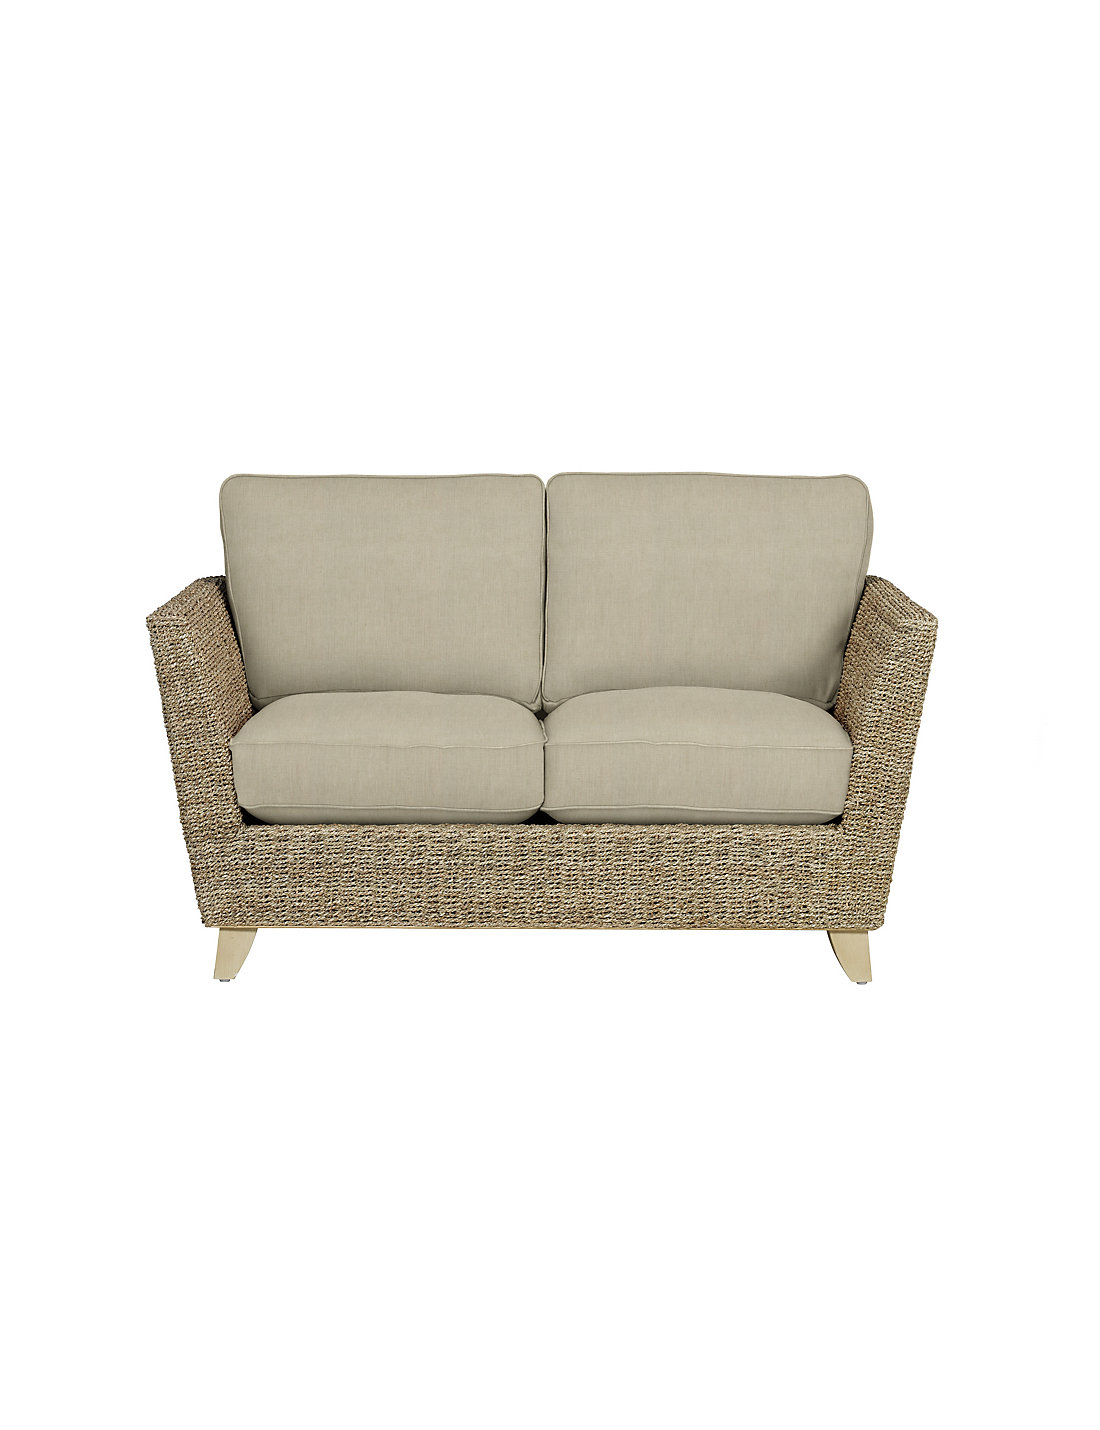 Small sofa bed marks and spencer refil sofa for Seat covers for cane furniture